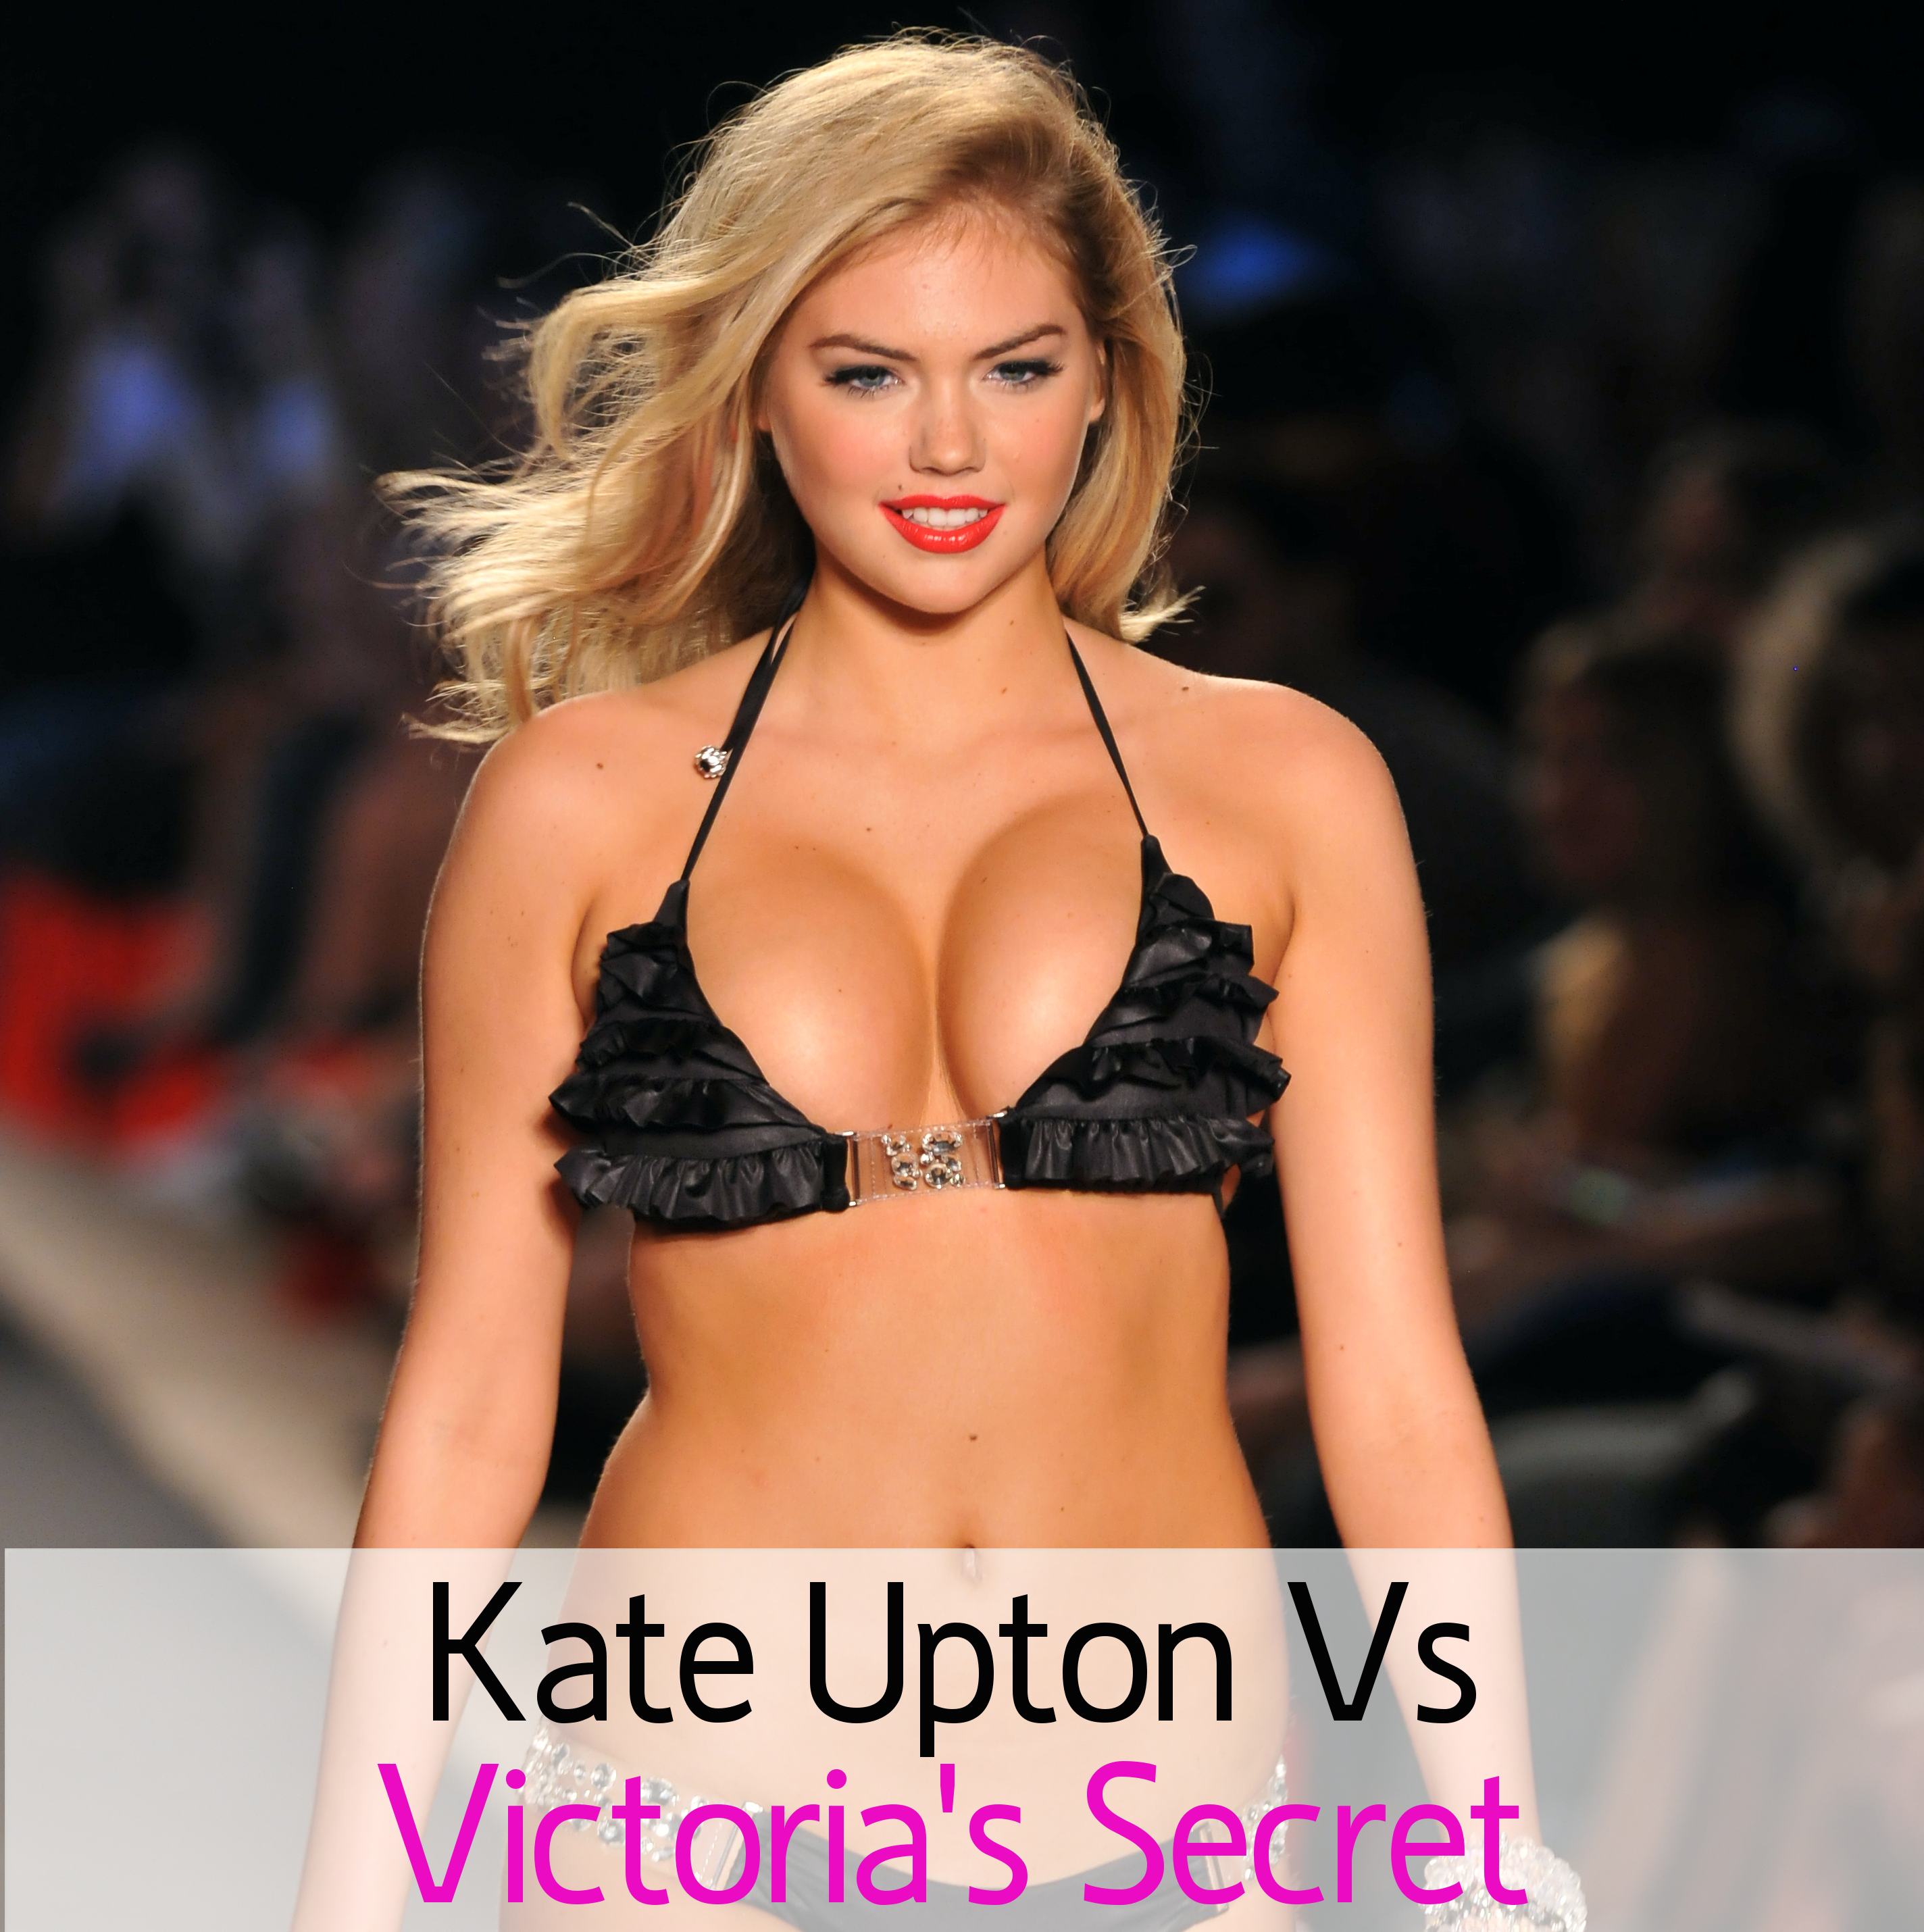 Agree Kate upton victoria secret apologise